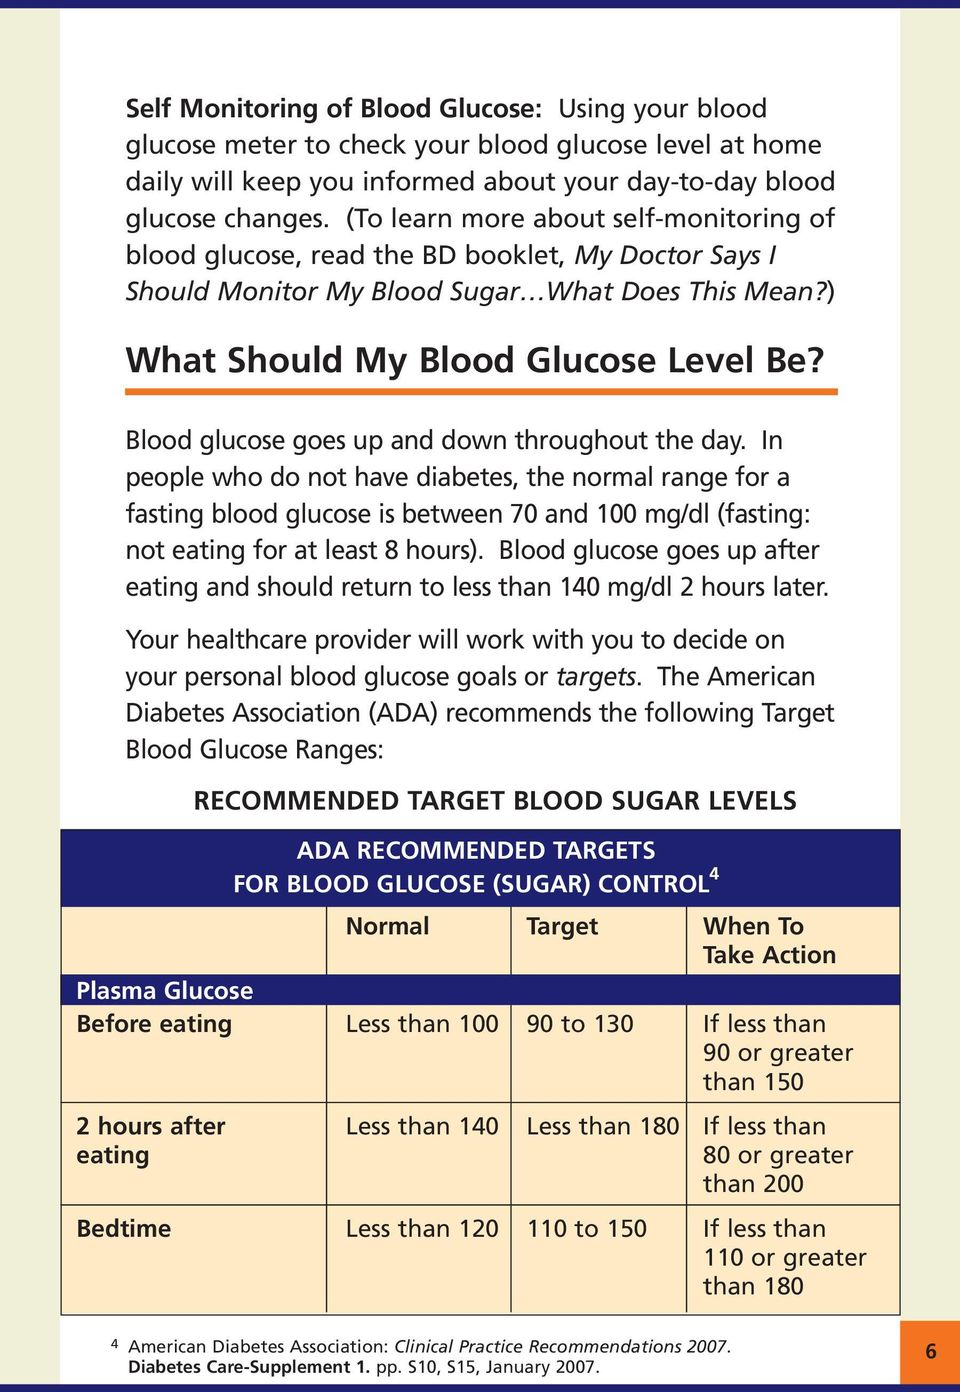 Blood glucose goes up and down throughout the day.